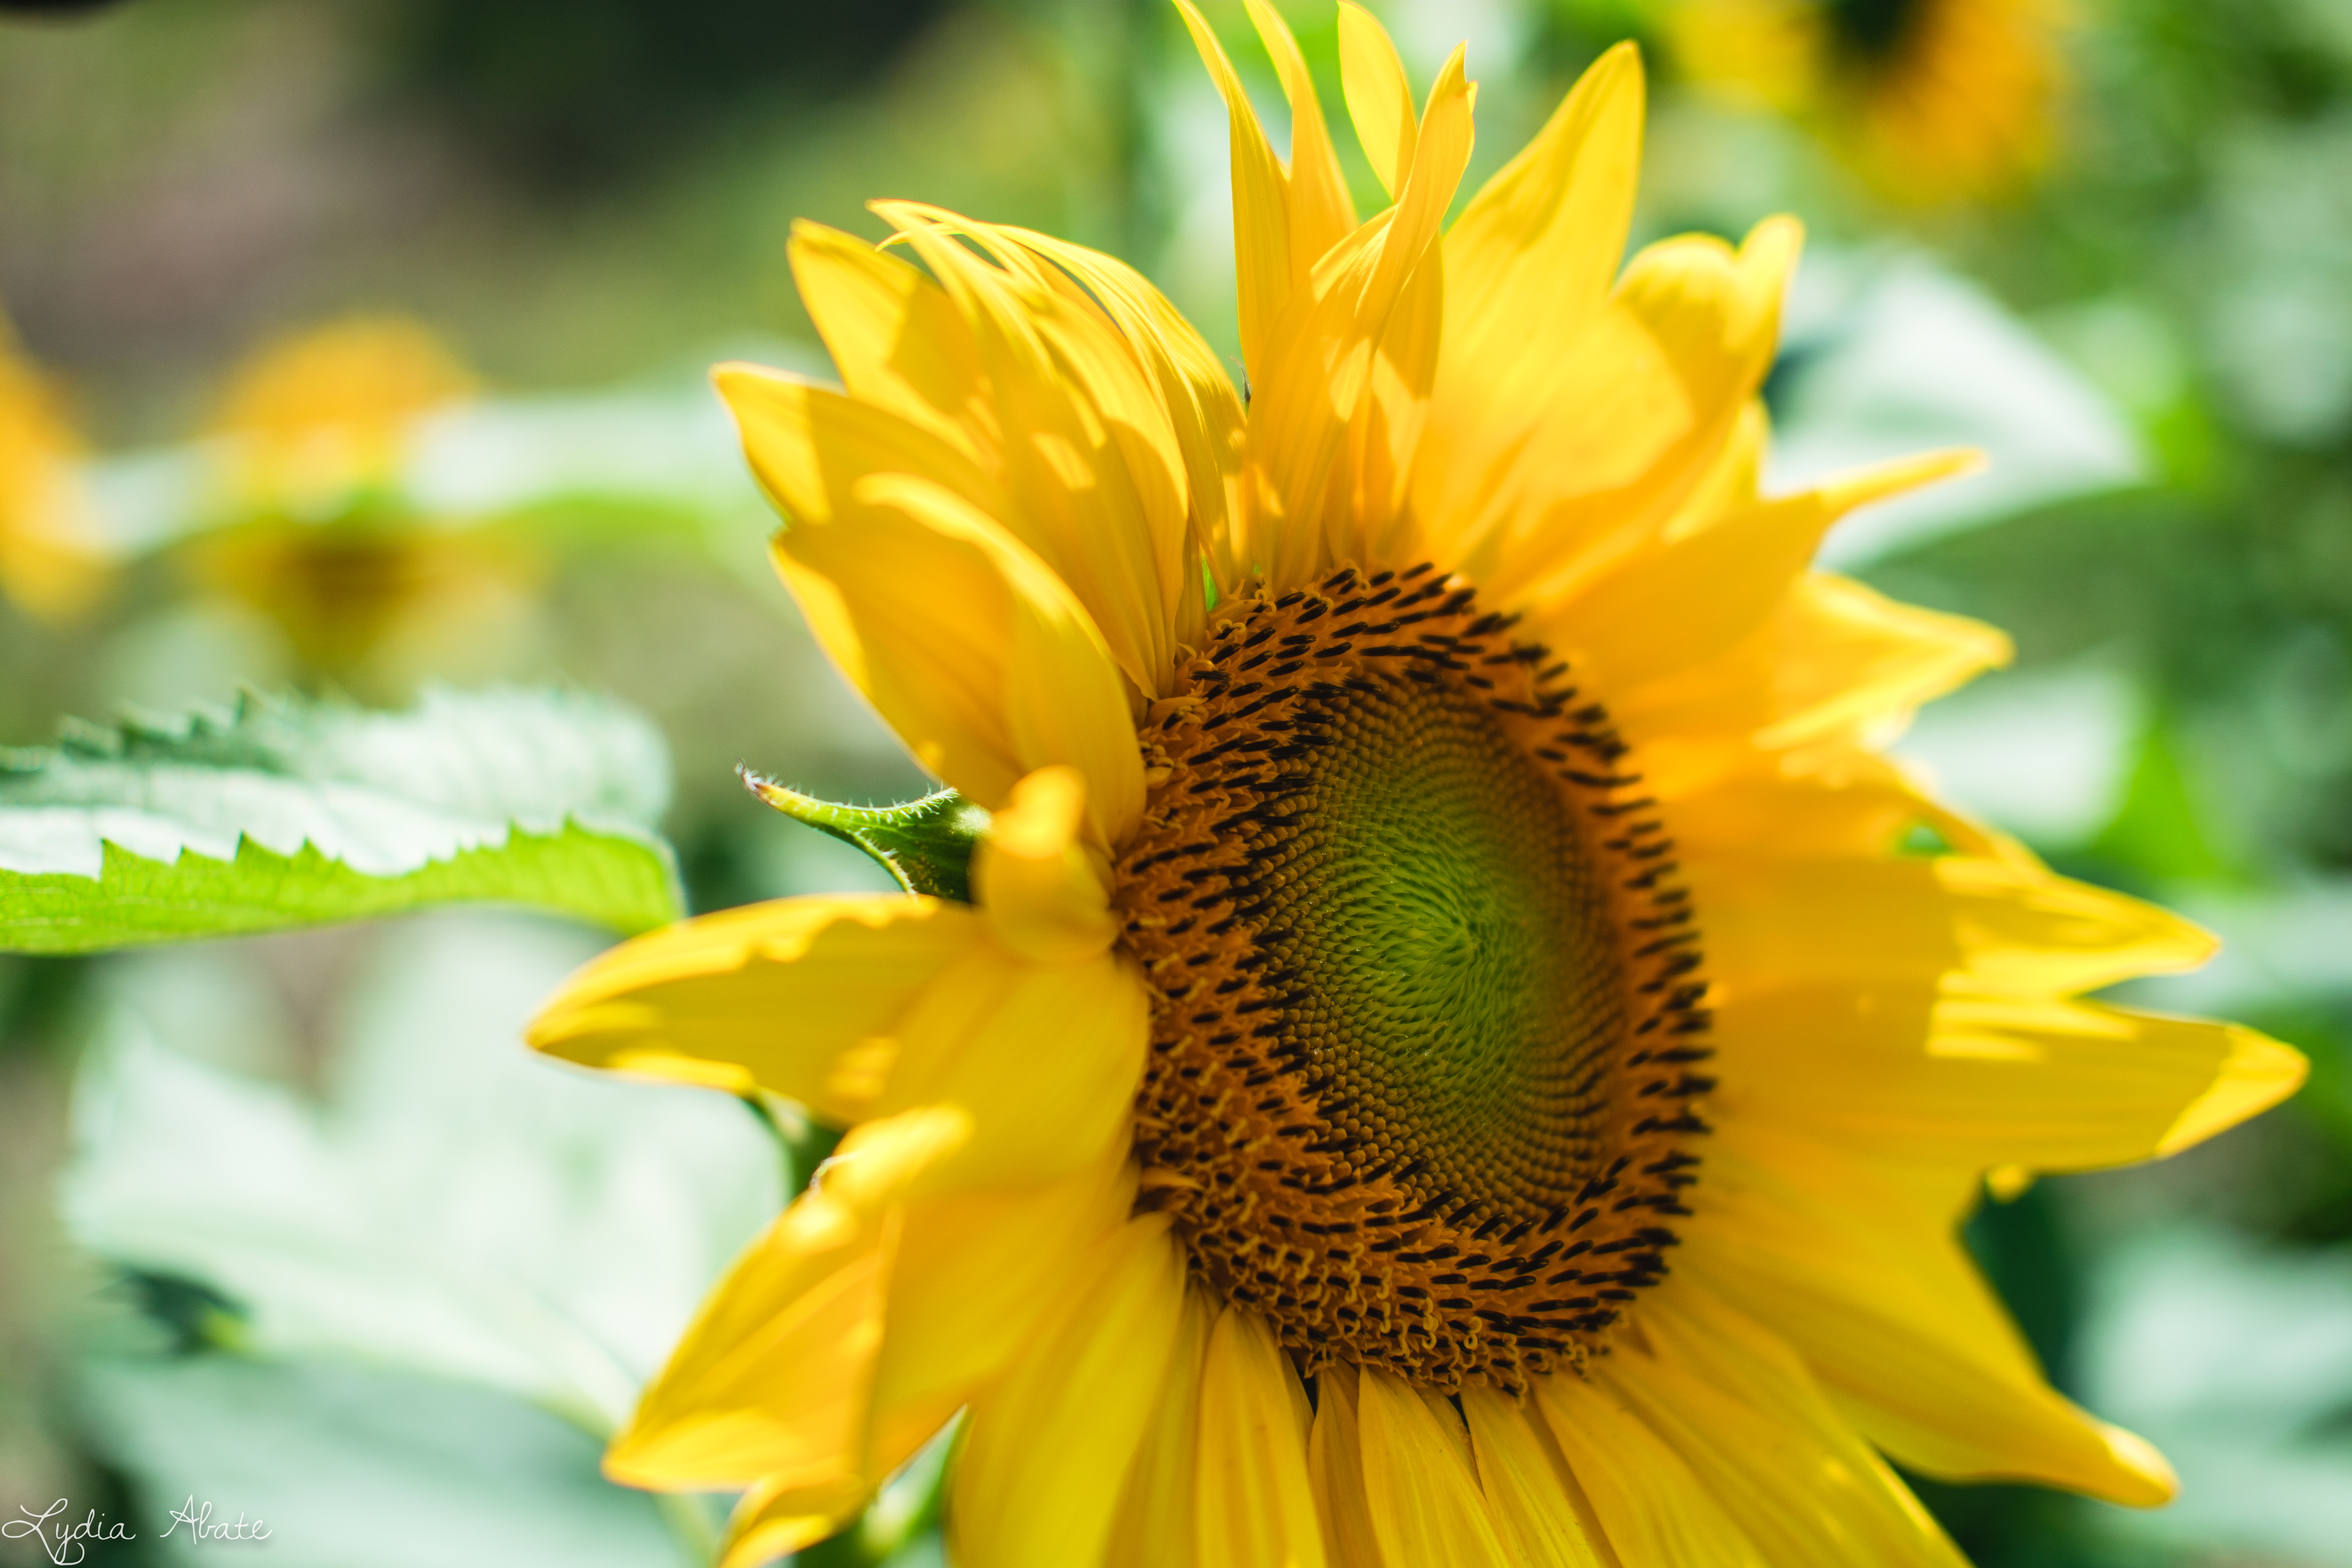 sunflowers larry augur farm northford ct-2.jpg